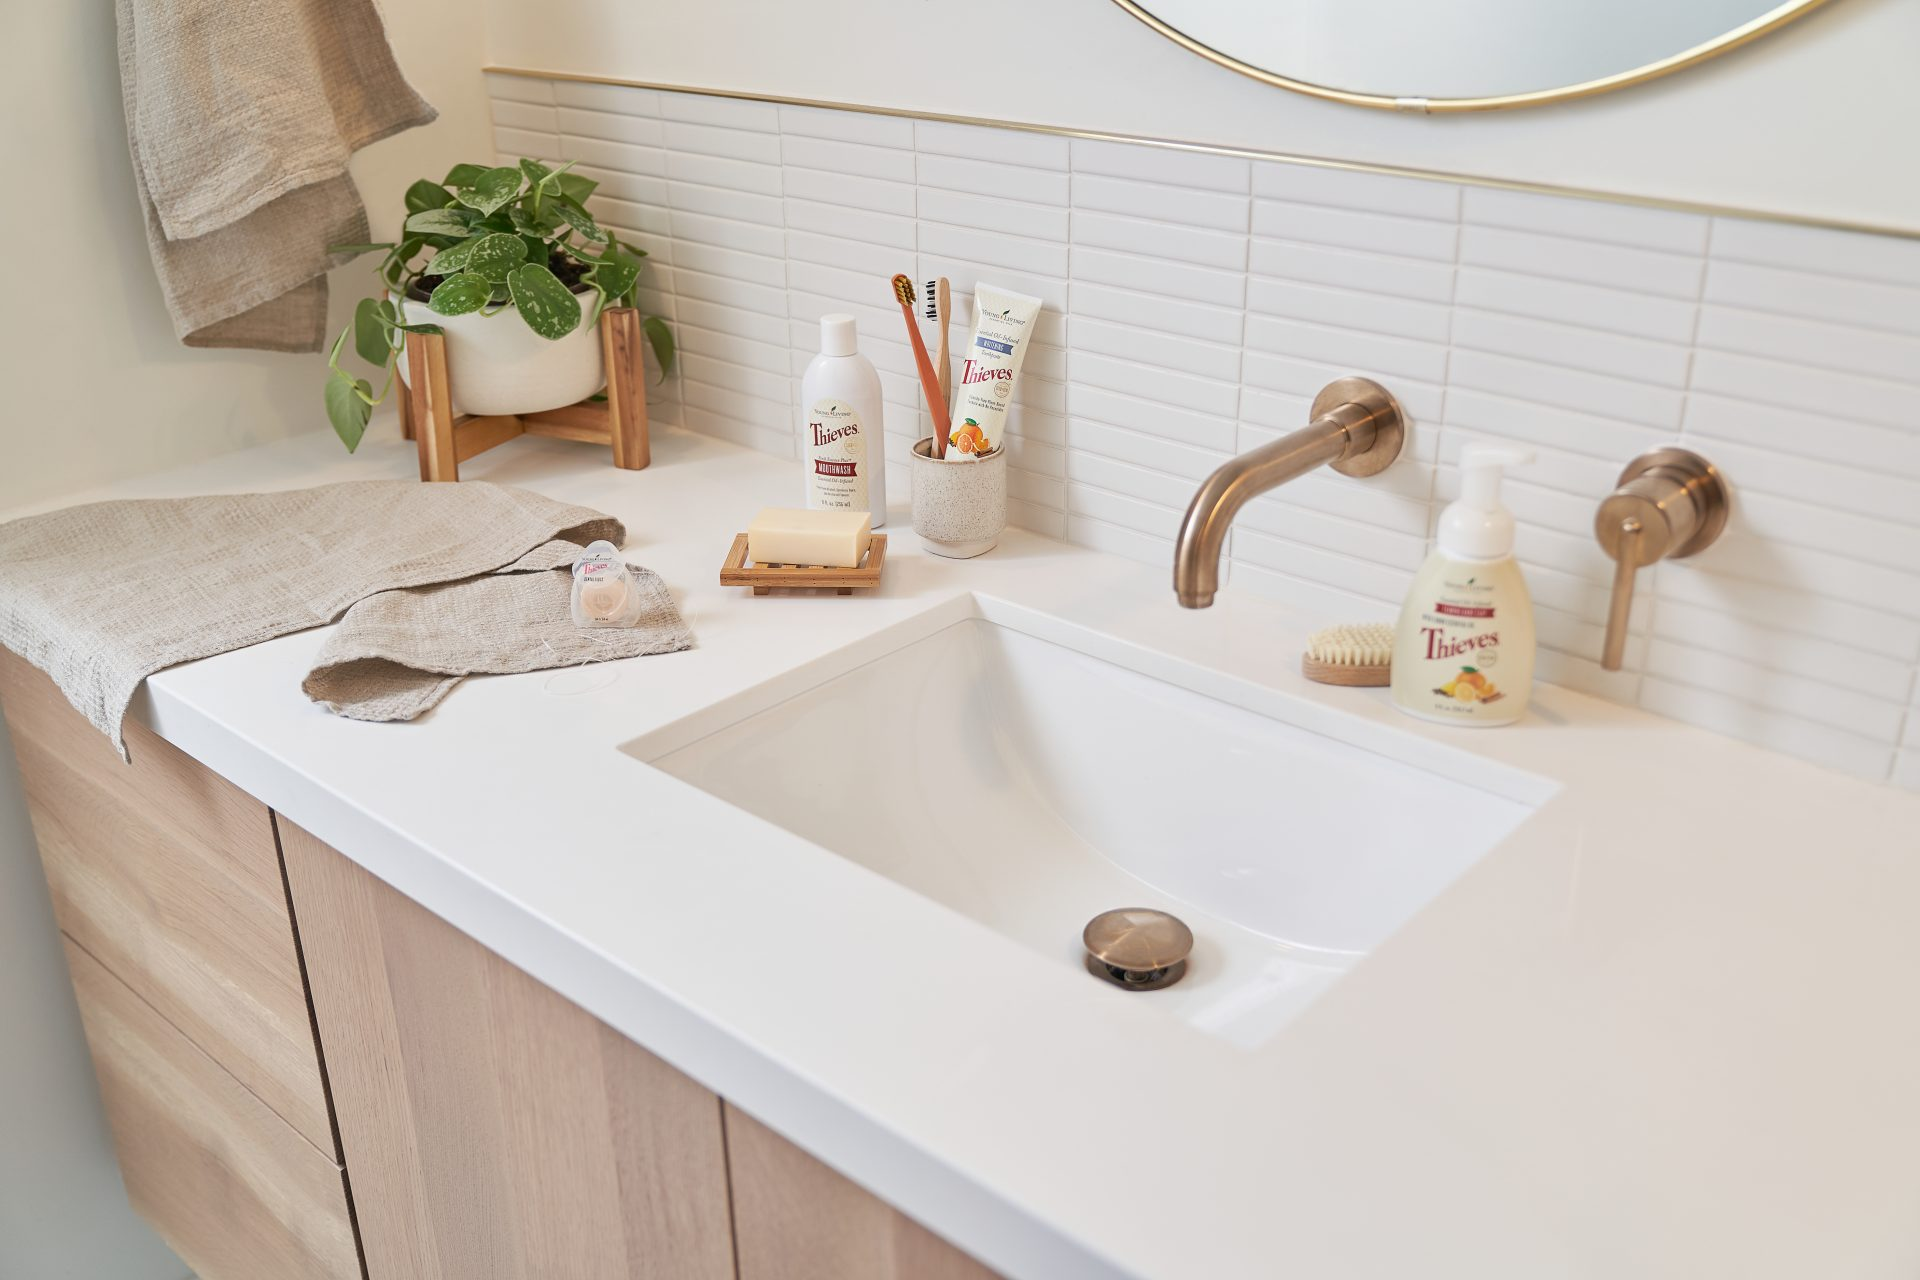 Clean bathroom with young living products